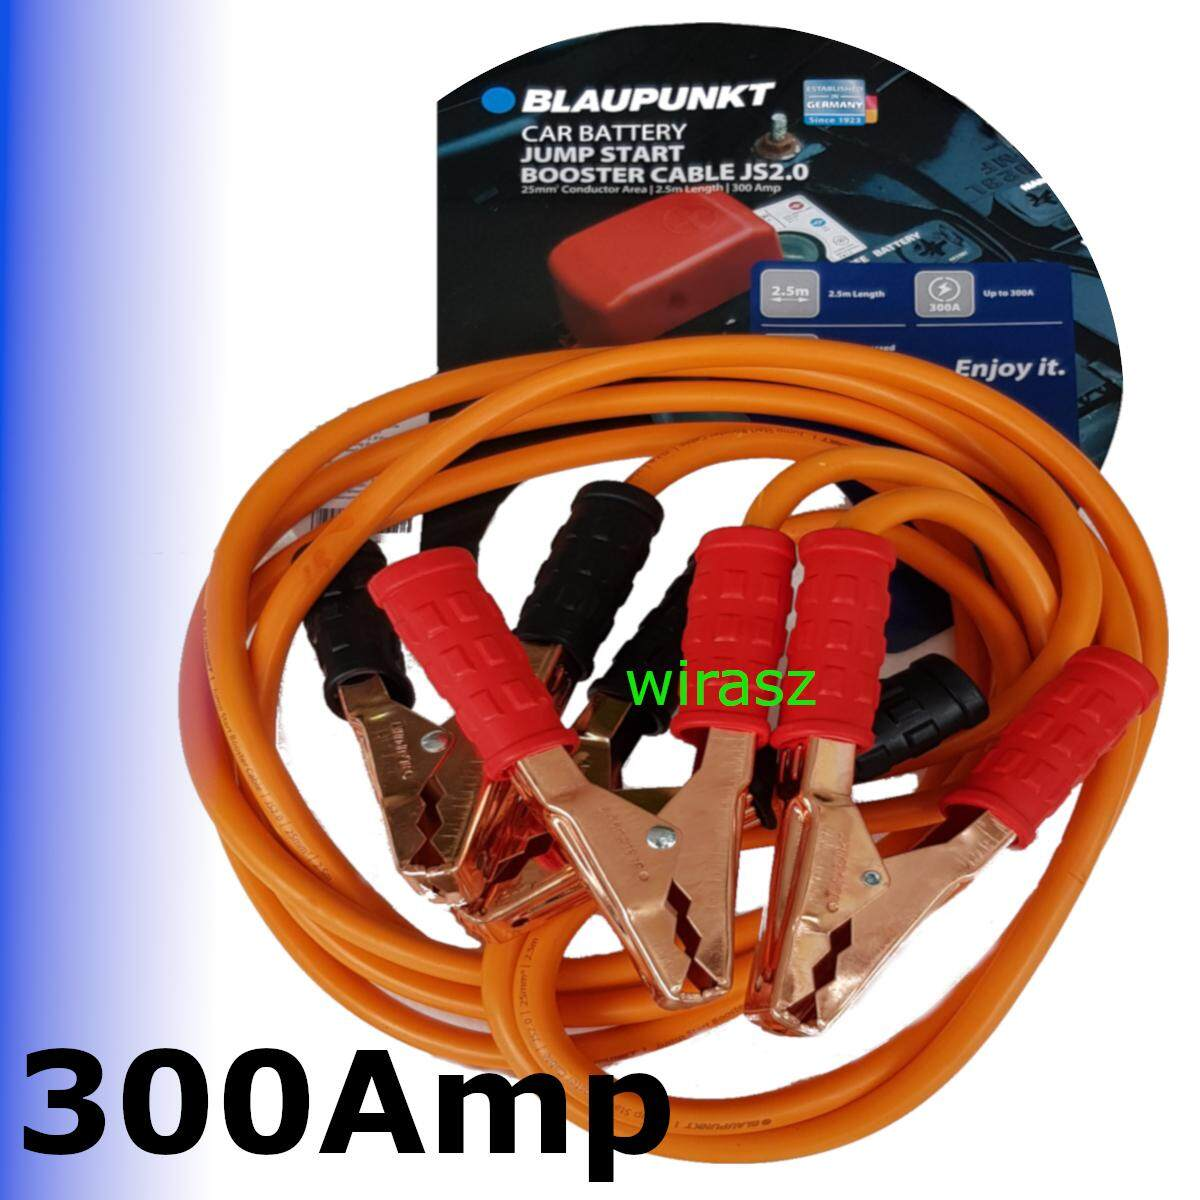 Mostaix Blaupunkt Starters Battery Chargers Portable Power Price